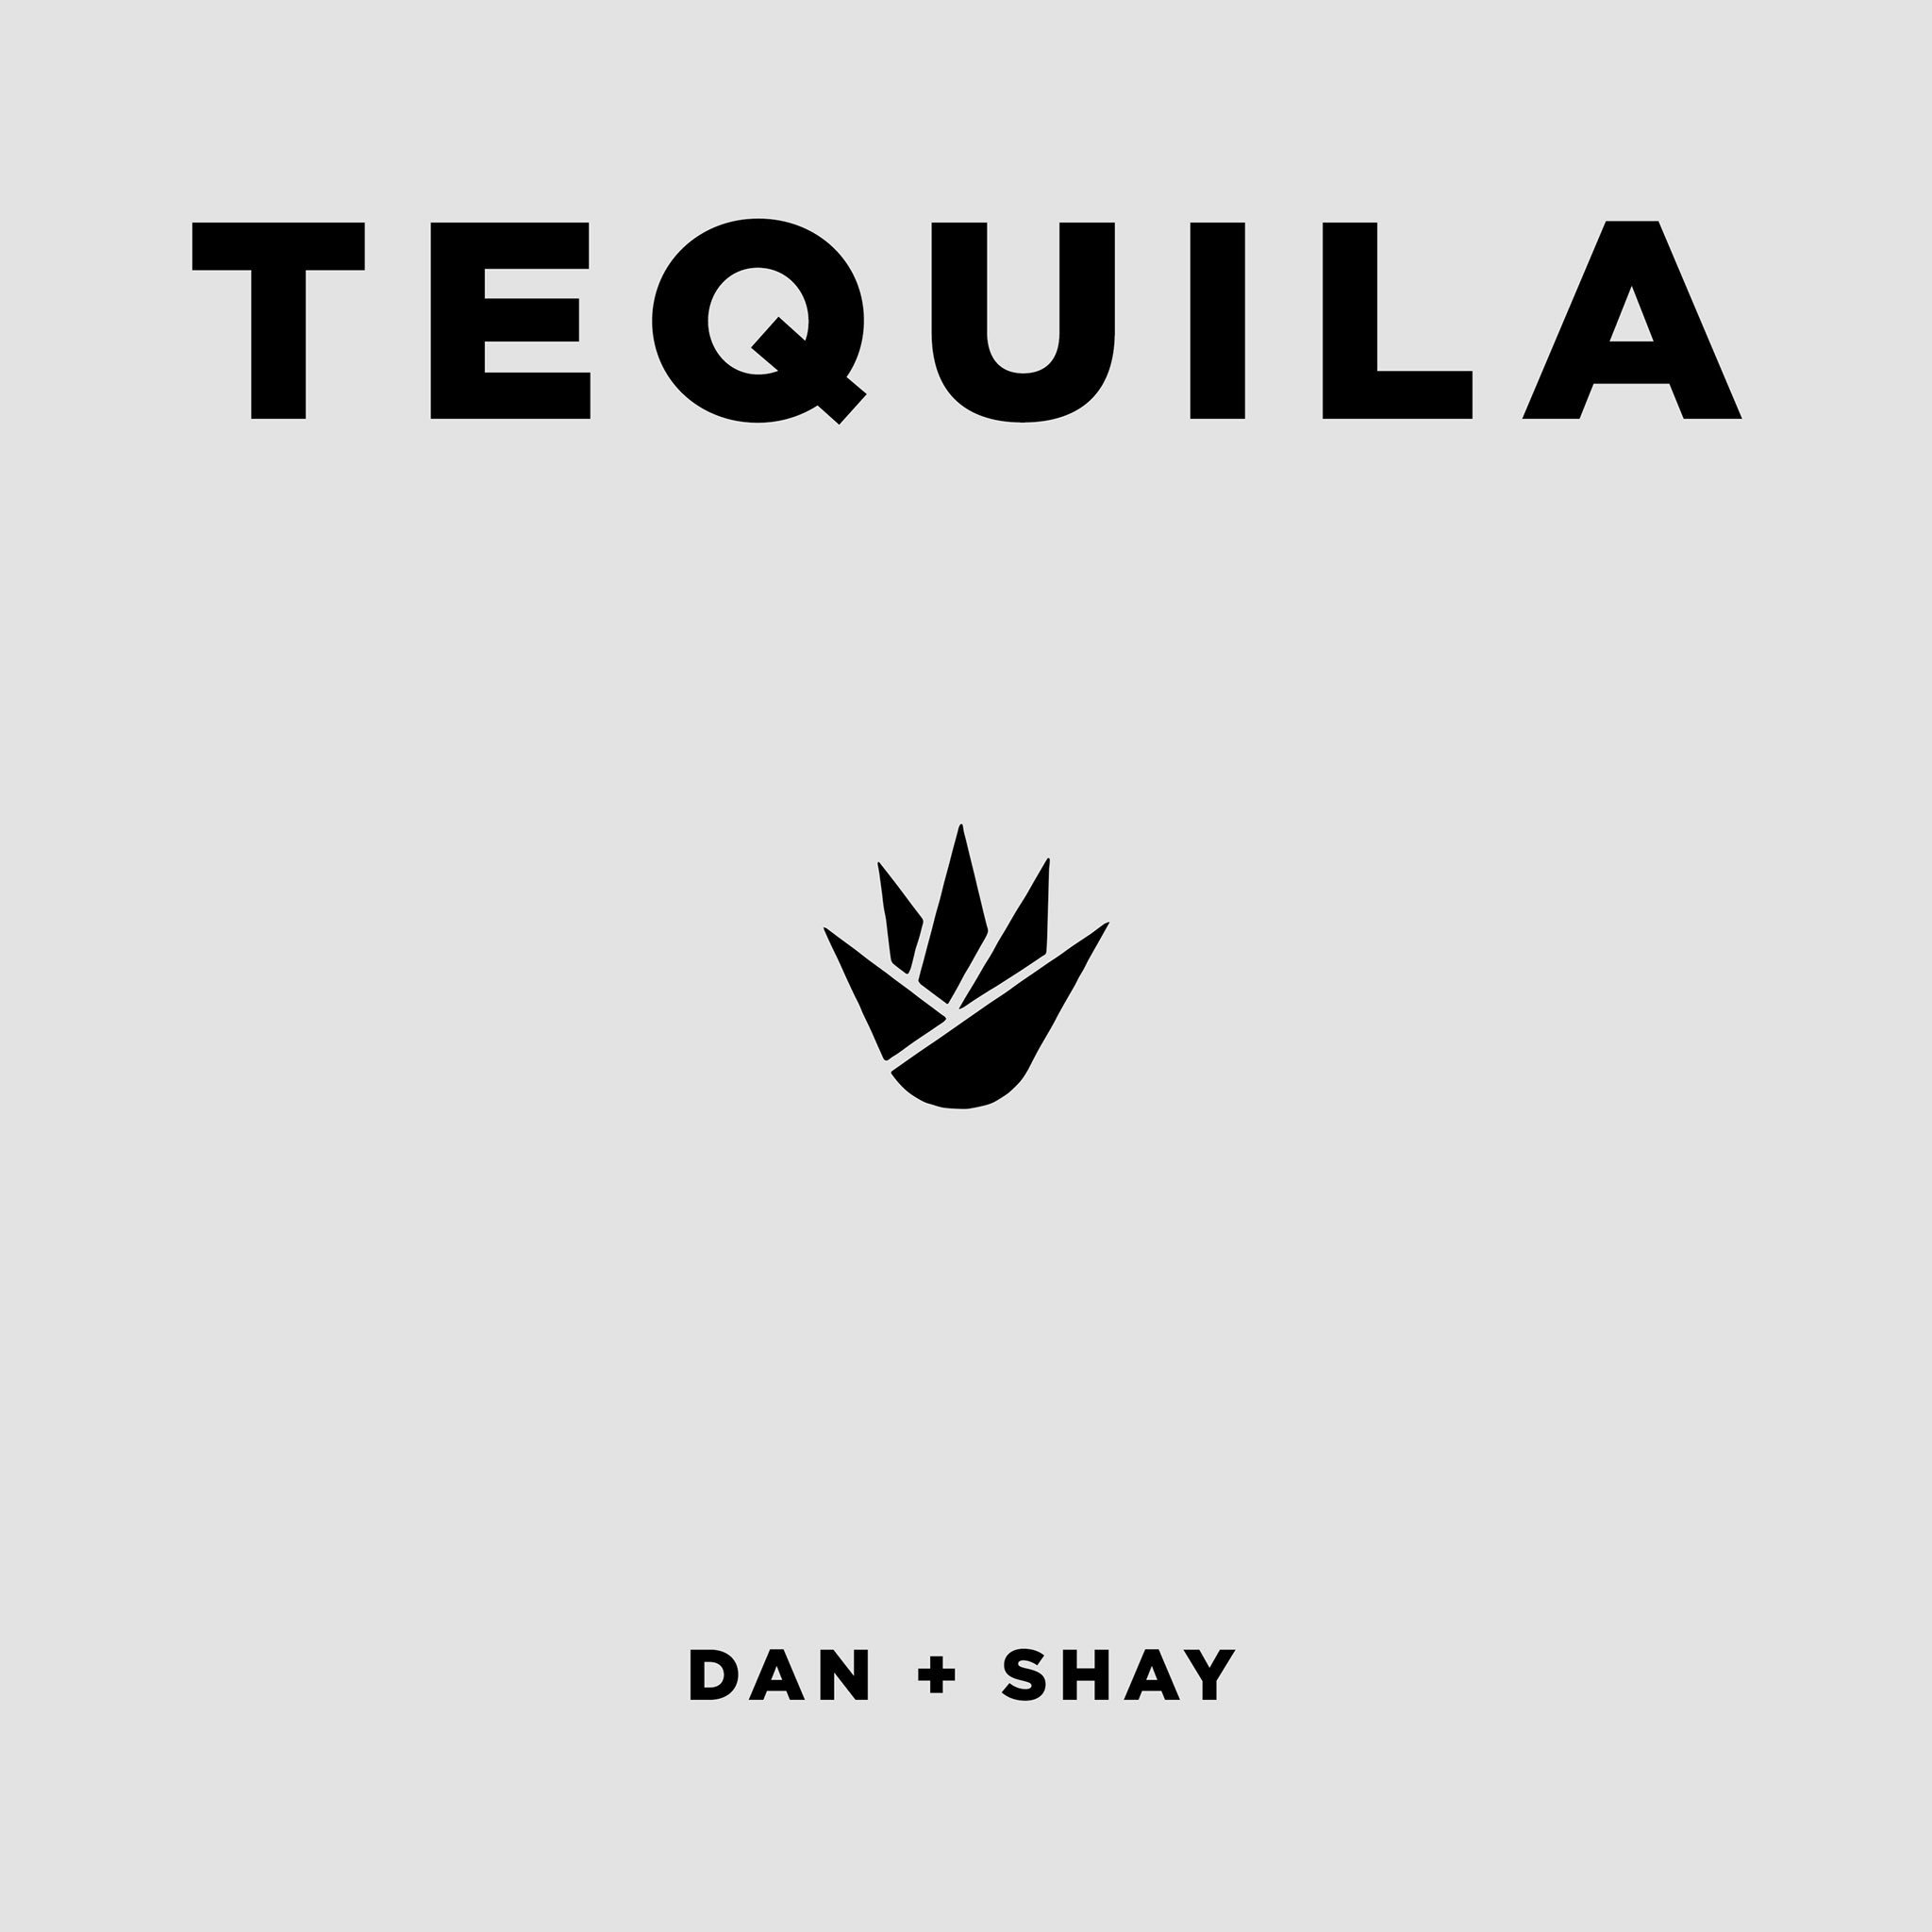 """Dan + Shay Release Nostalgia-Soaked New Single """"Tequila"""